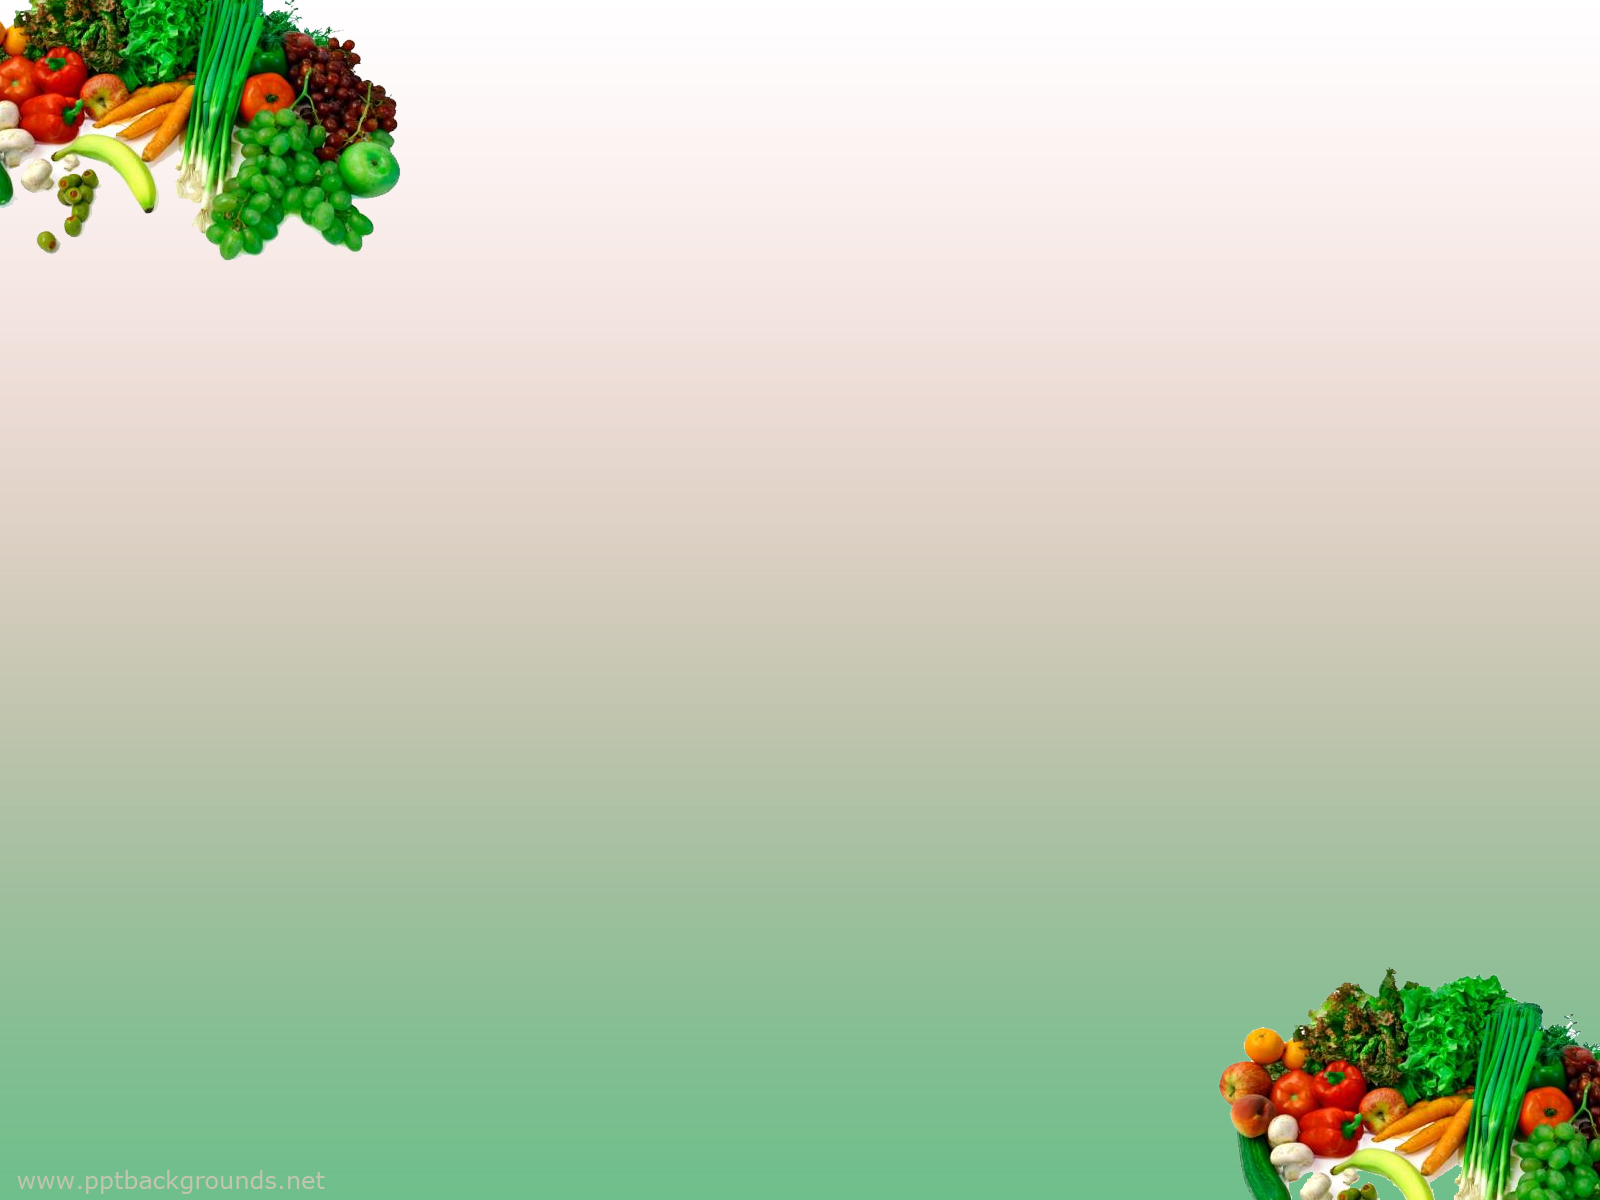 Fruit Borders And Frames Trendy Image Galleries 1600x1200